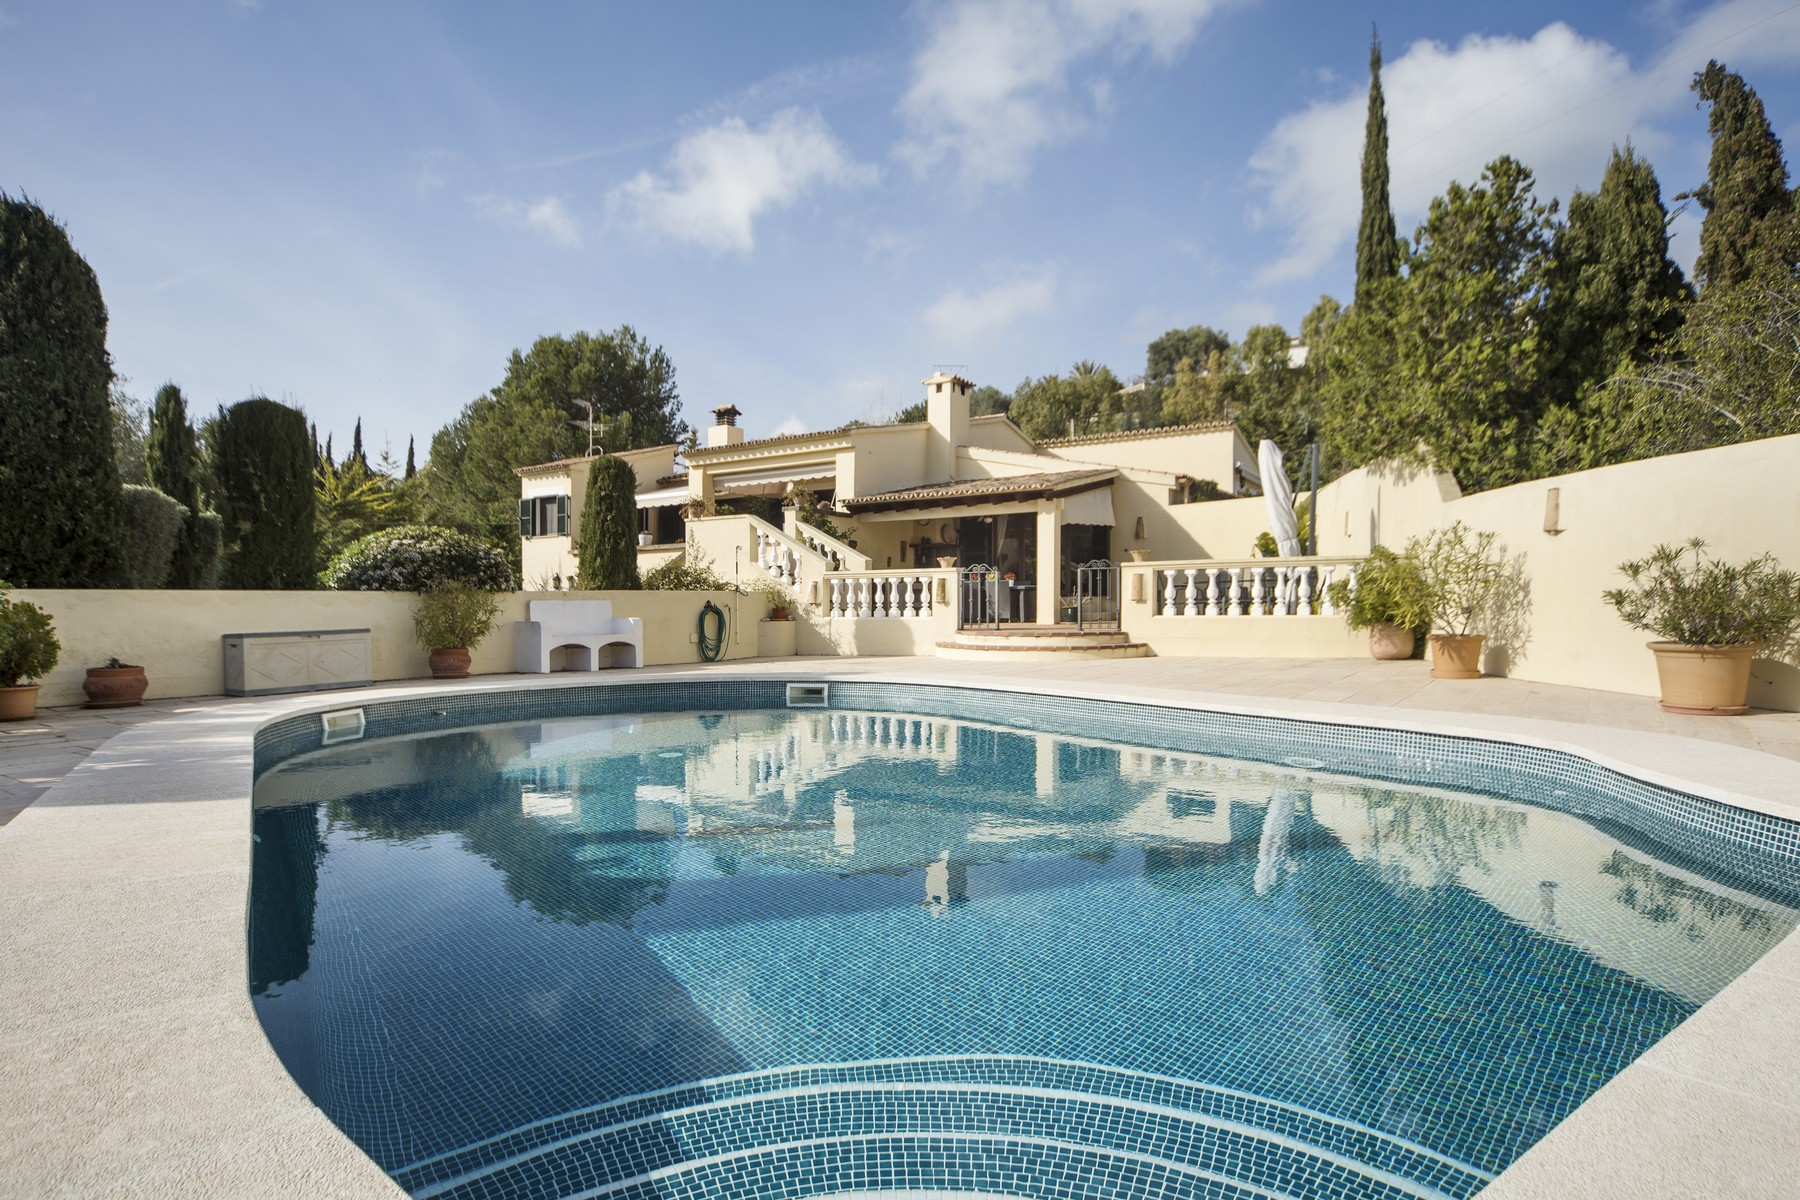 Single Family Home for Sale at Delightful villa with swimming pool in Son Font Other Balearic Islands, Balearic Islands, 07184 Spain